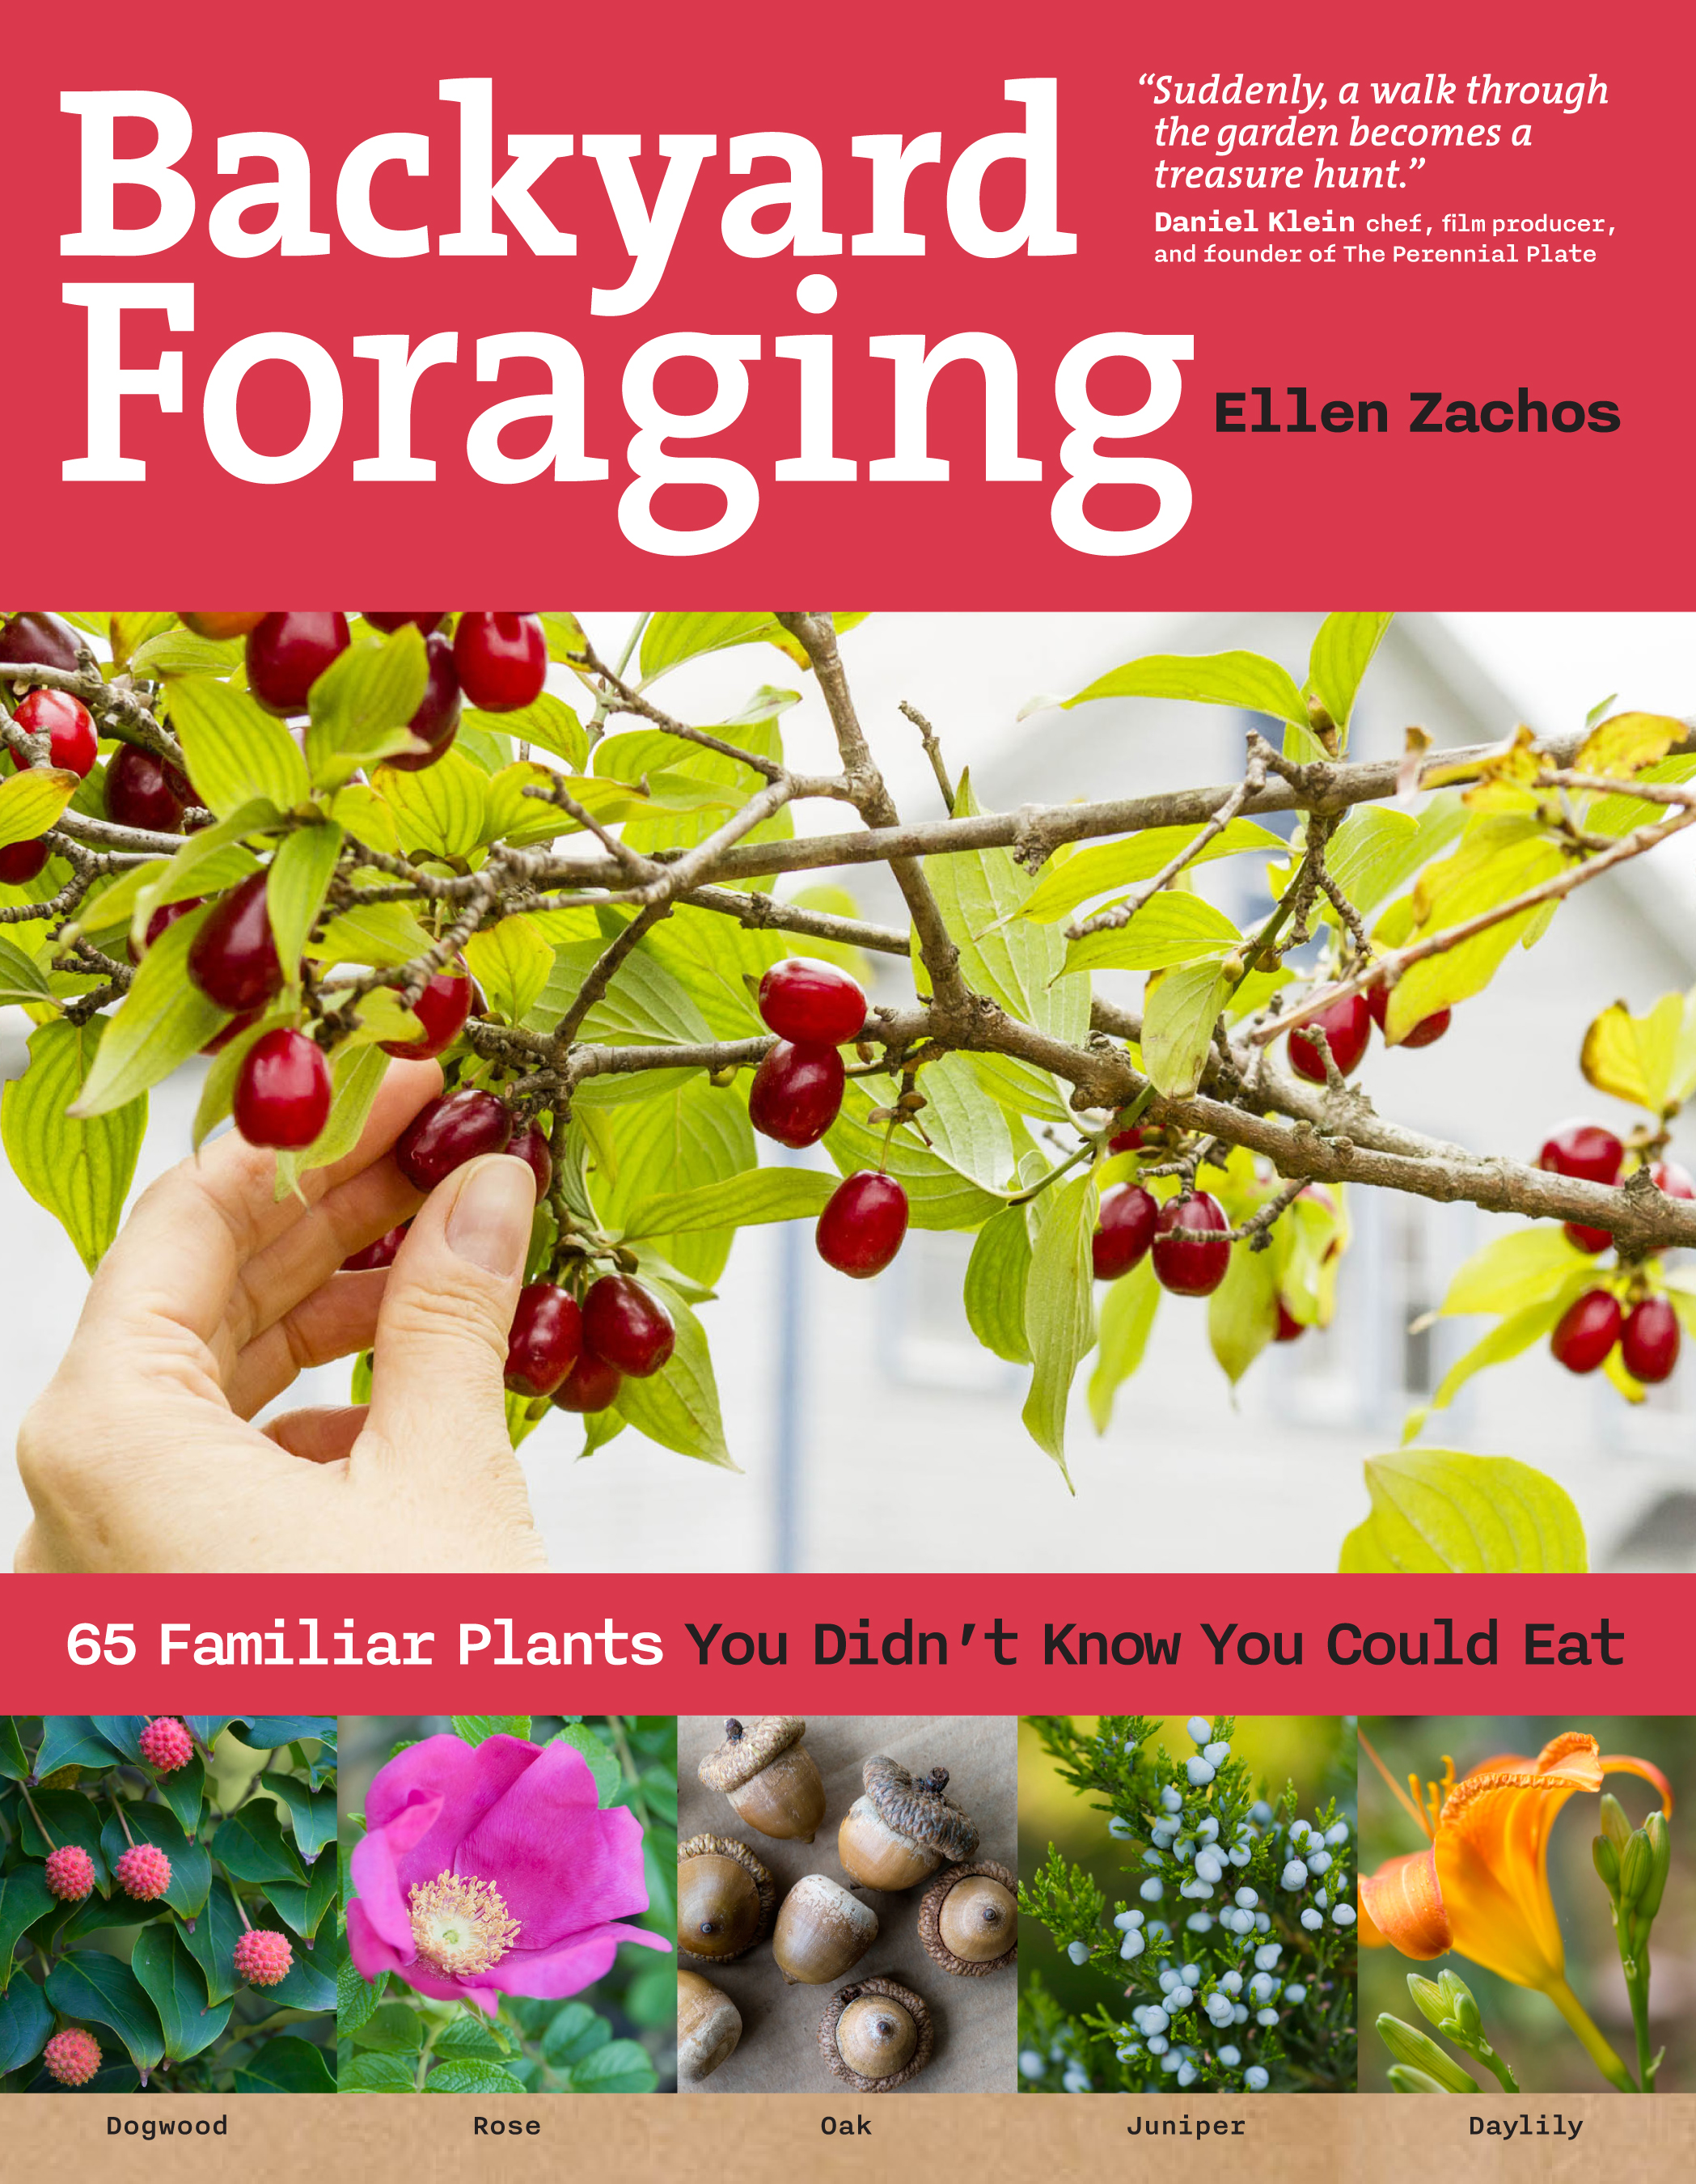 Backyard Foraging 65 Familiar Plants You Didn't Know You Could Eat - Ellen Zachos